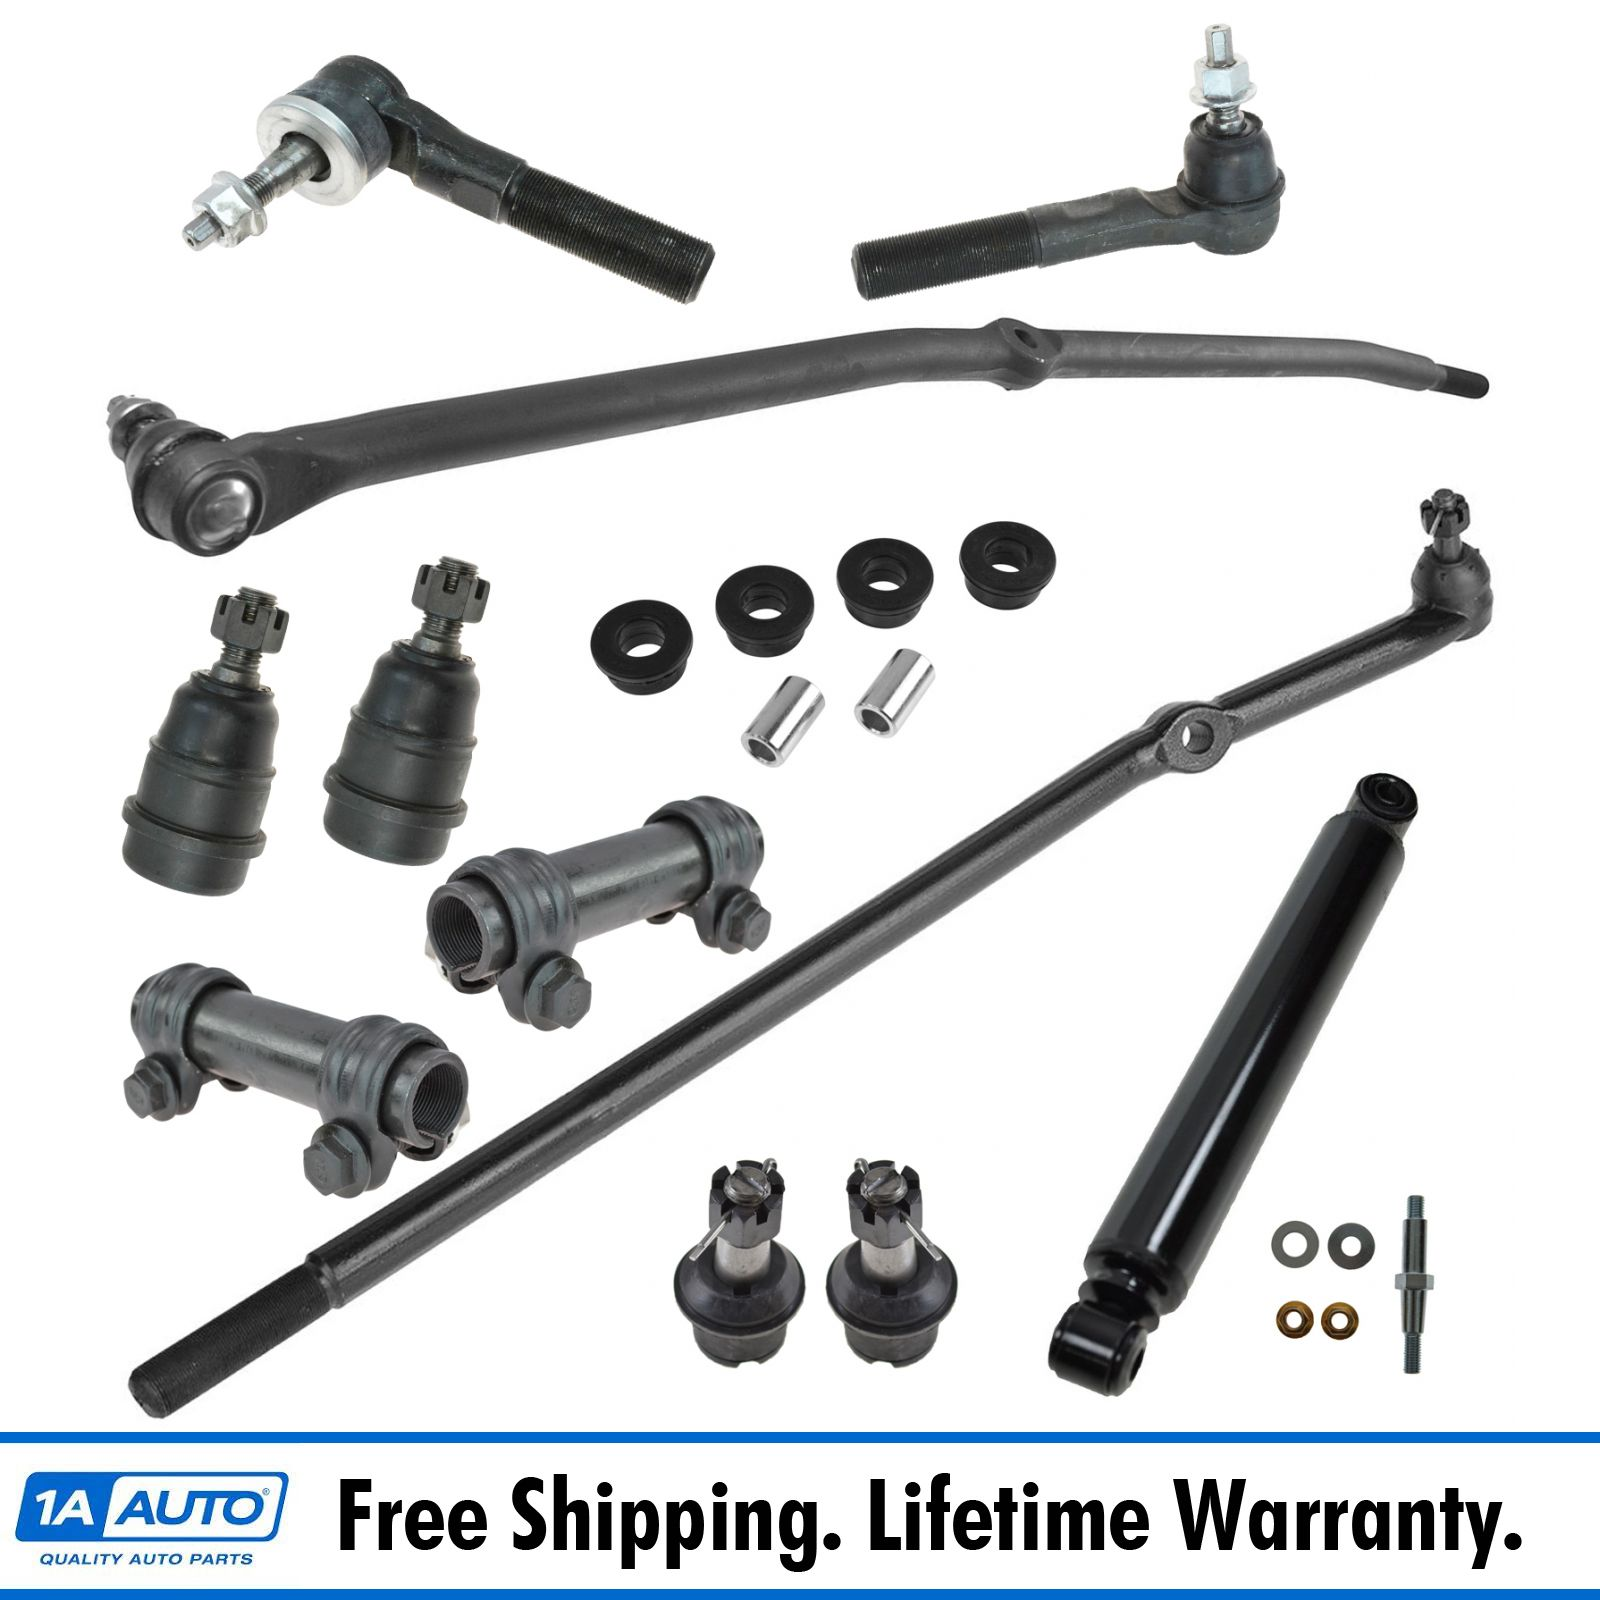 Ball Joint For 2006-2010 Dodge Ram 1500 Front Upper Left or Right Side